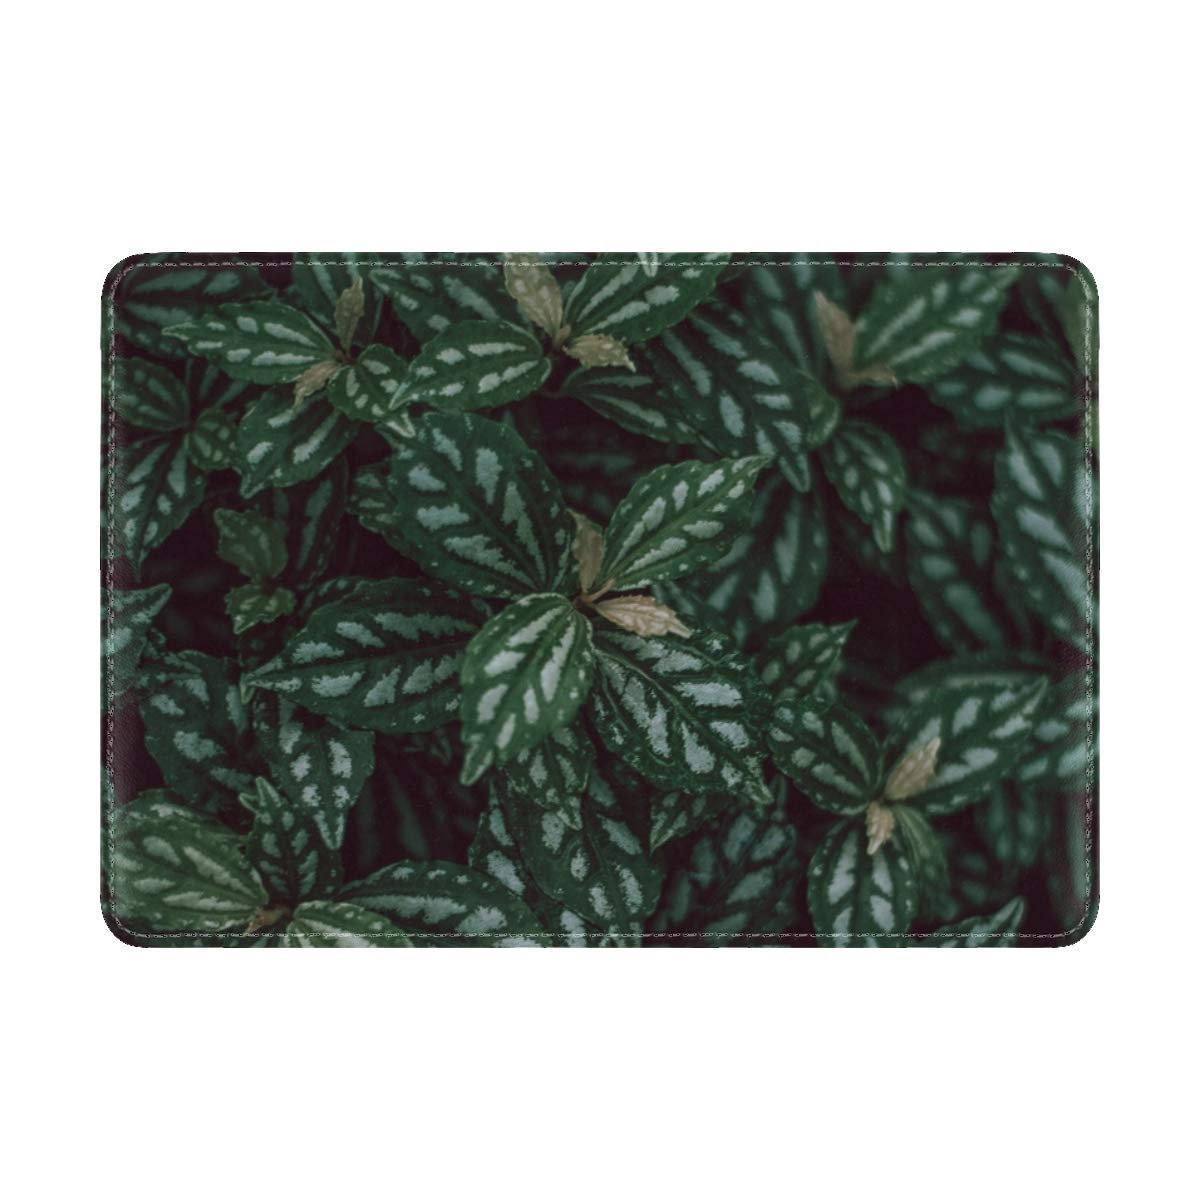 Plants Leaves Green Leather Passport Holder Cover Case Travel One Pocket